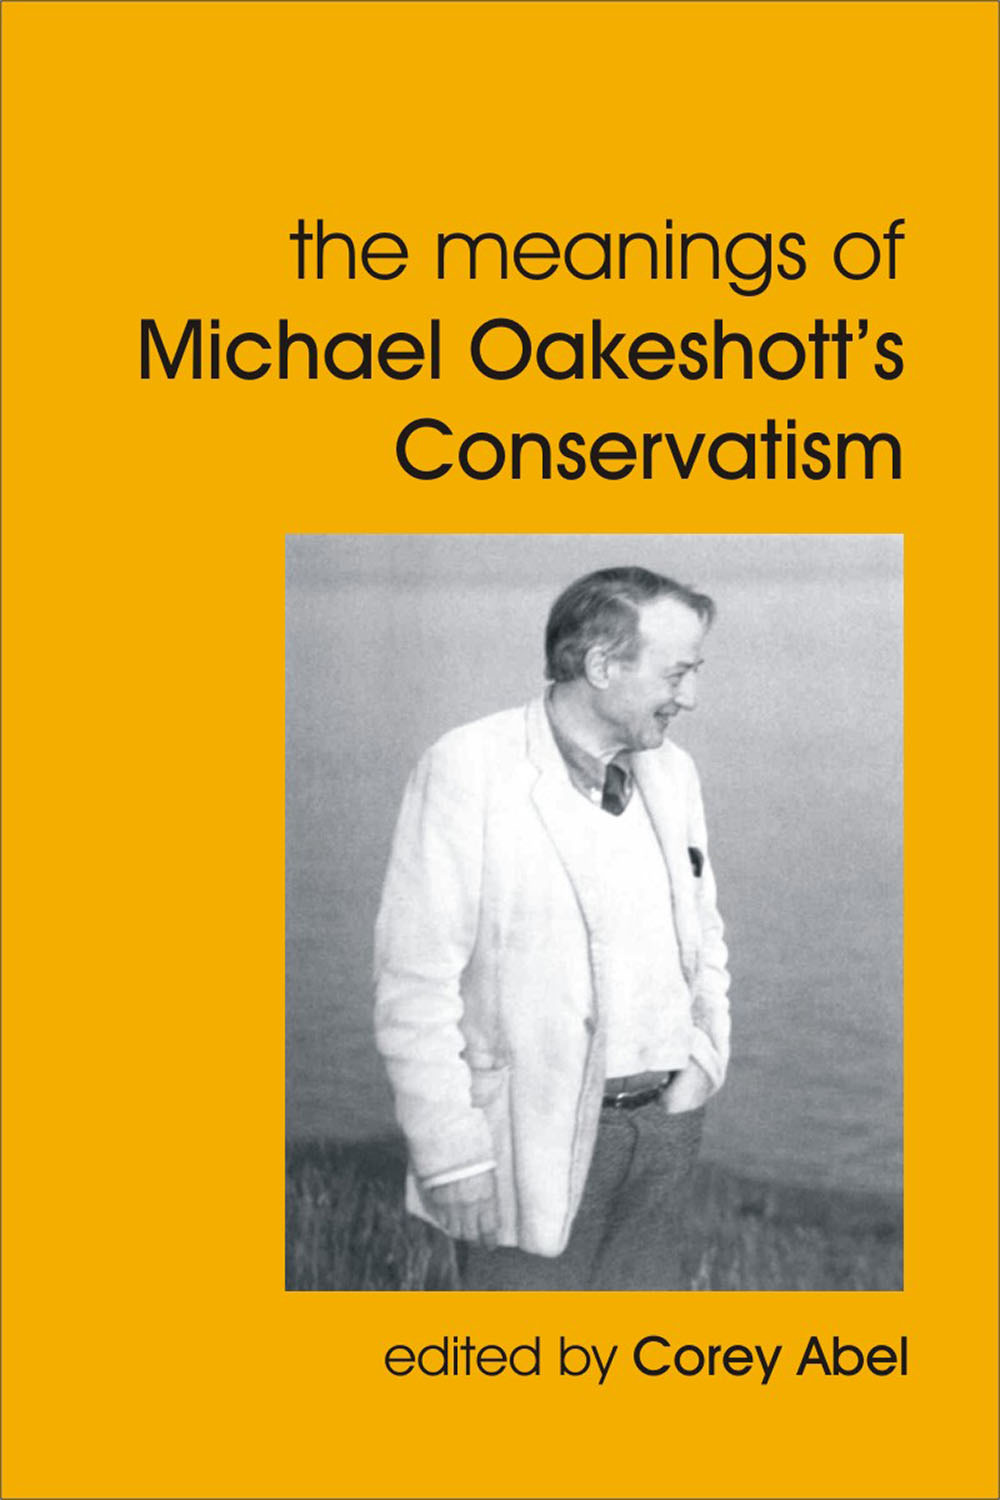 Abel, Corey - The Meanings of Michael Oakeshott's Conservatism, ebook